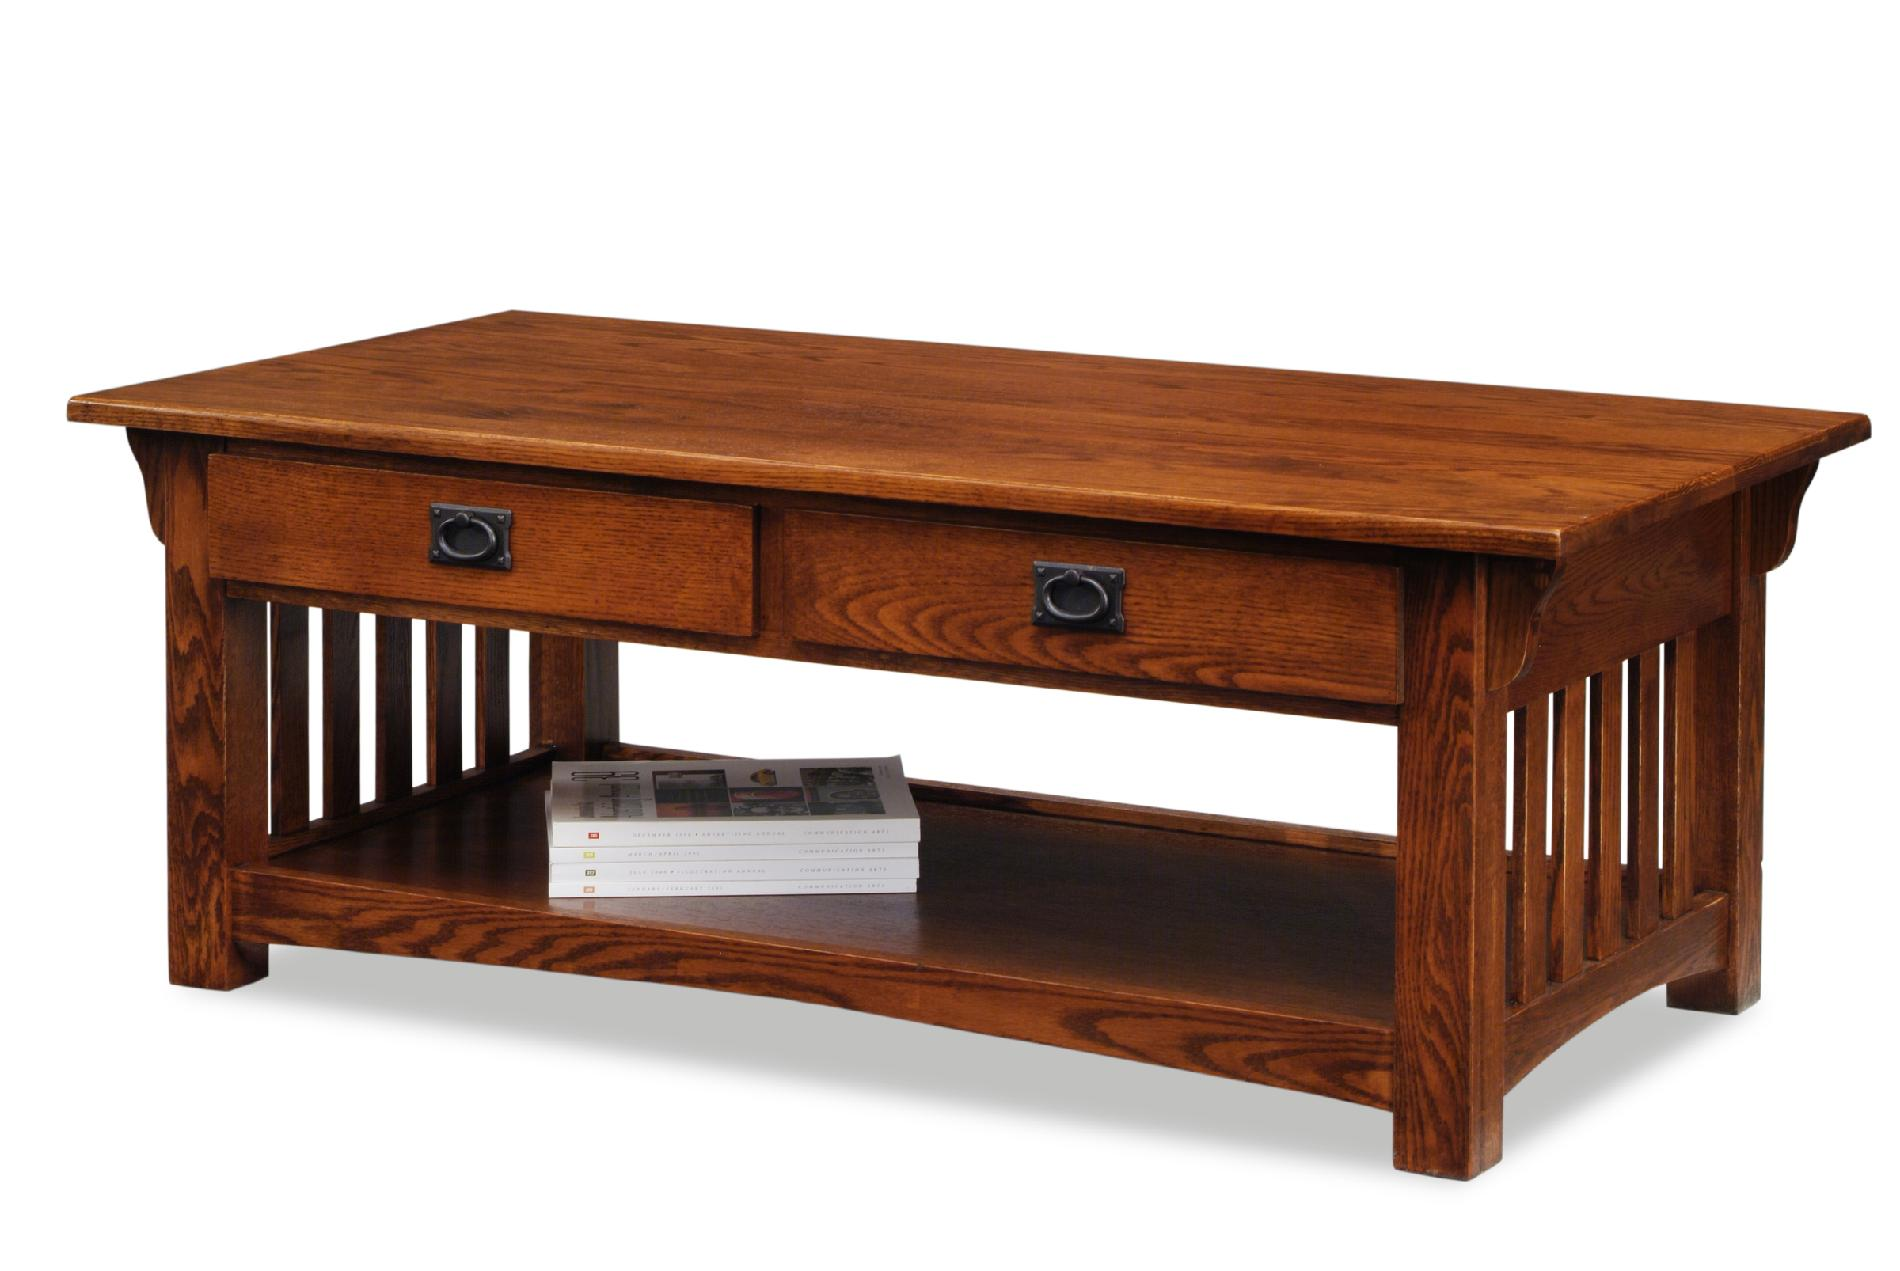 Image of Leick 8204 Mission Coffee Table with Drawers and Shelf - Medium Oak, Brown